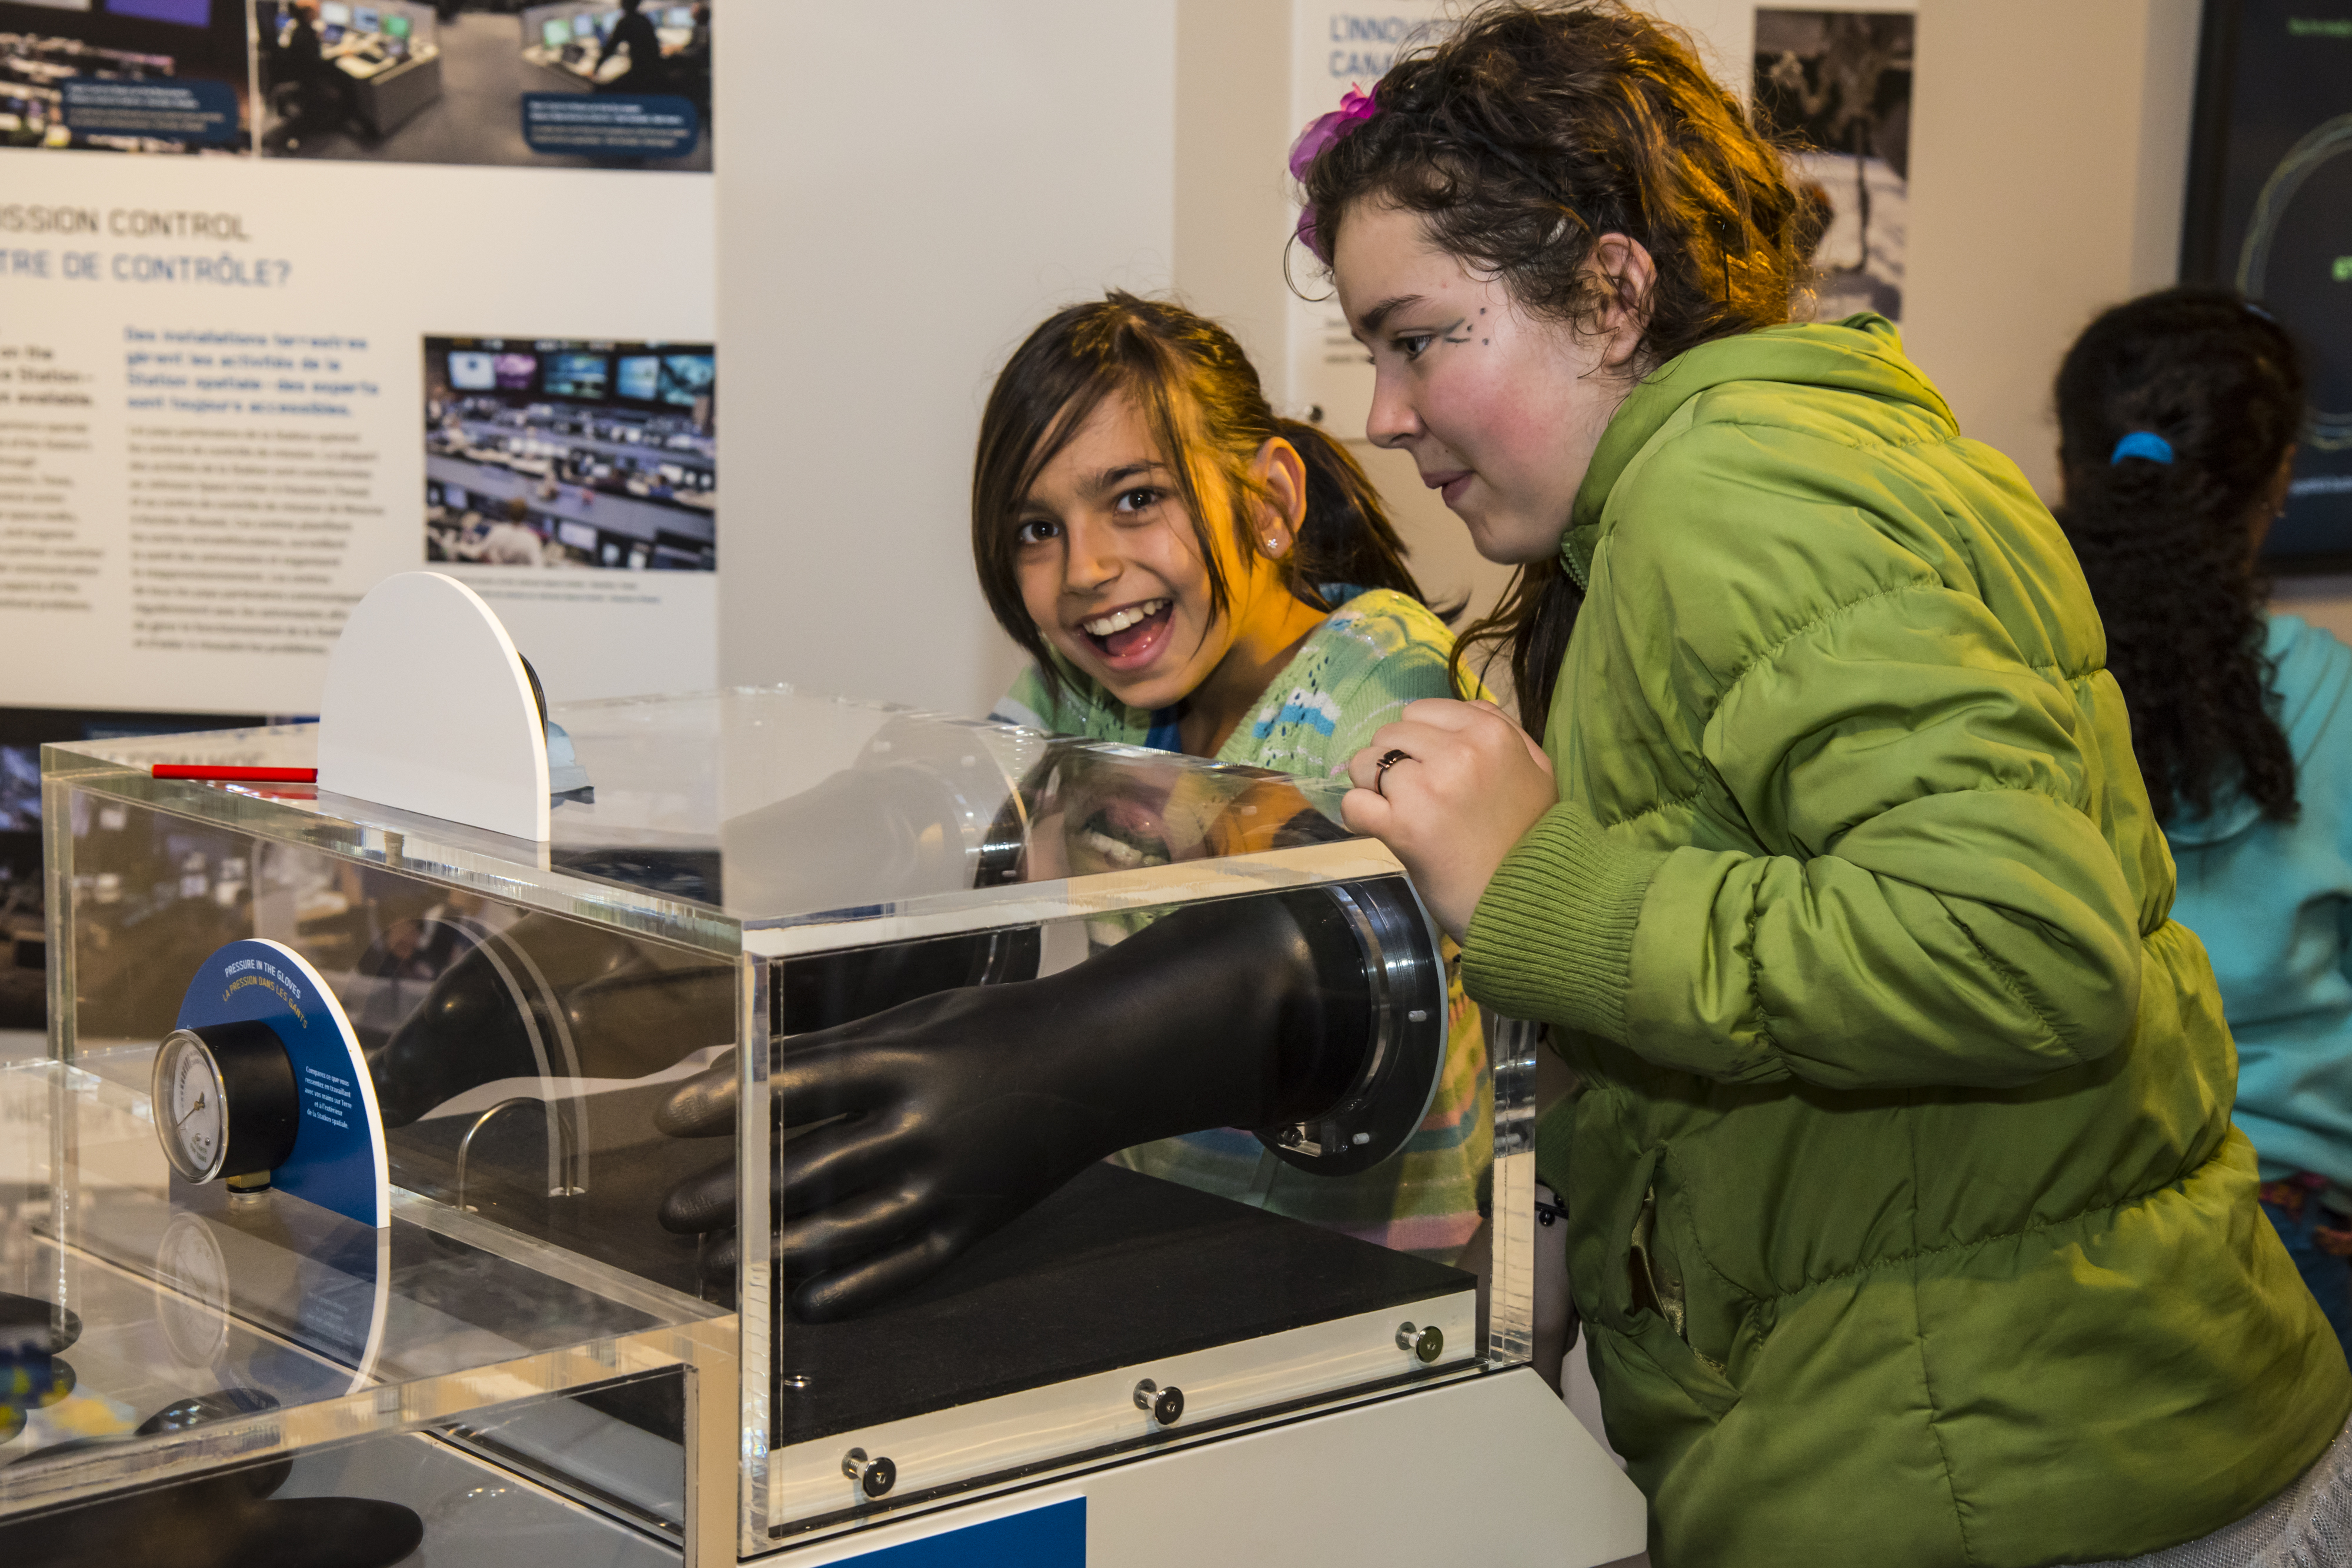 Two young girls stand next to a glass case in a museum; one girl is inserting her hand into a black pressurized glove inside the case.